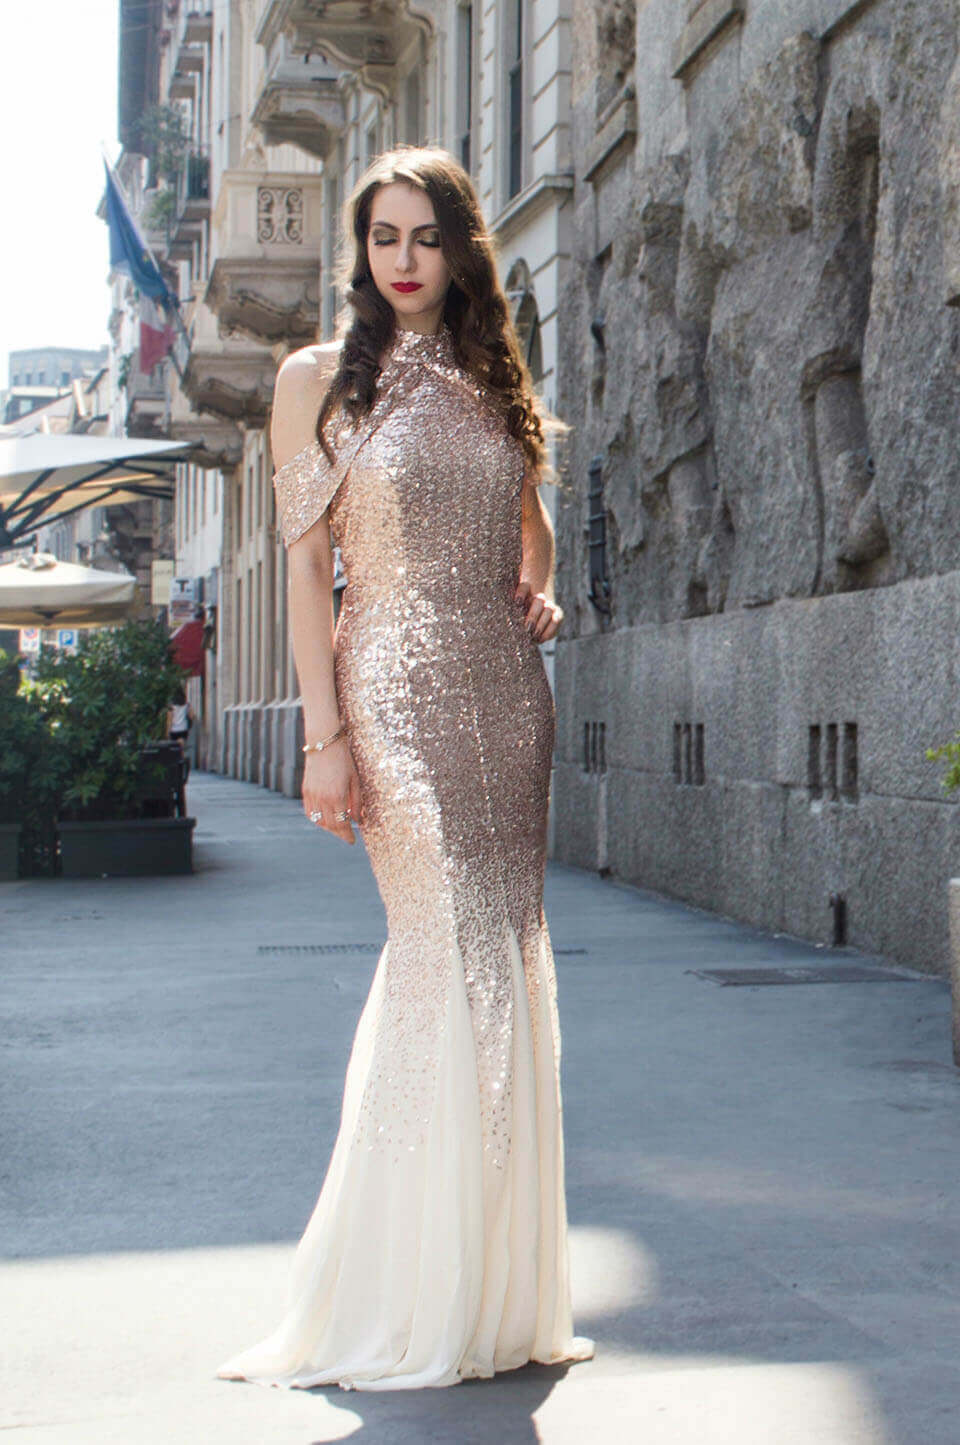 Sequin dress: long dress